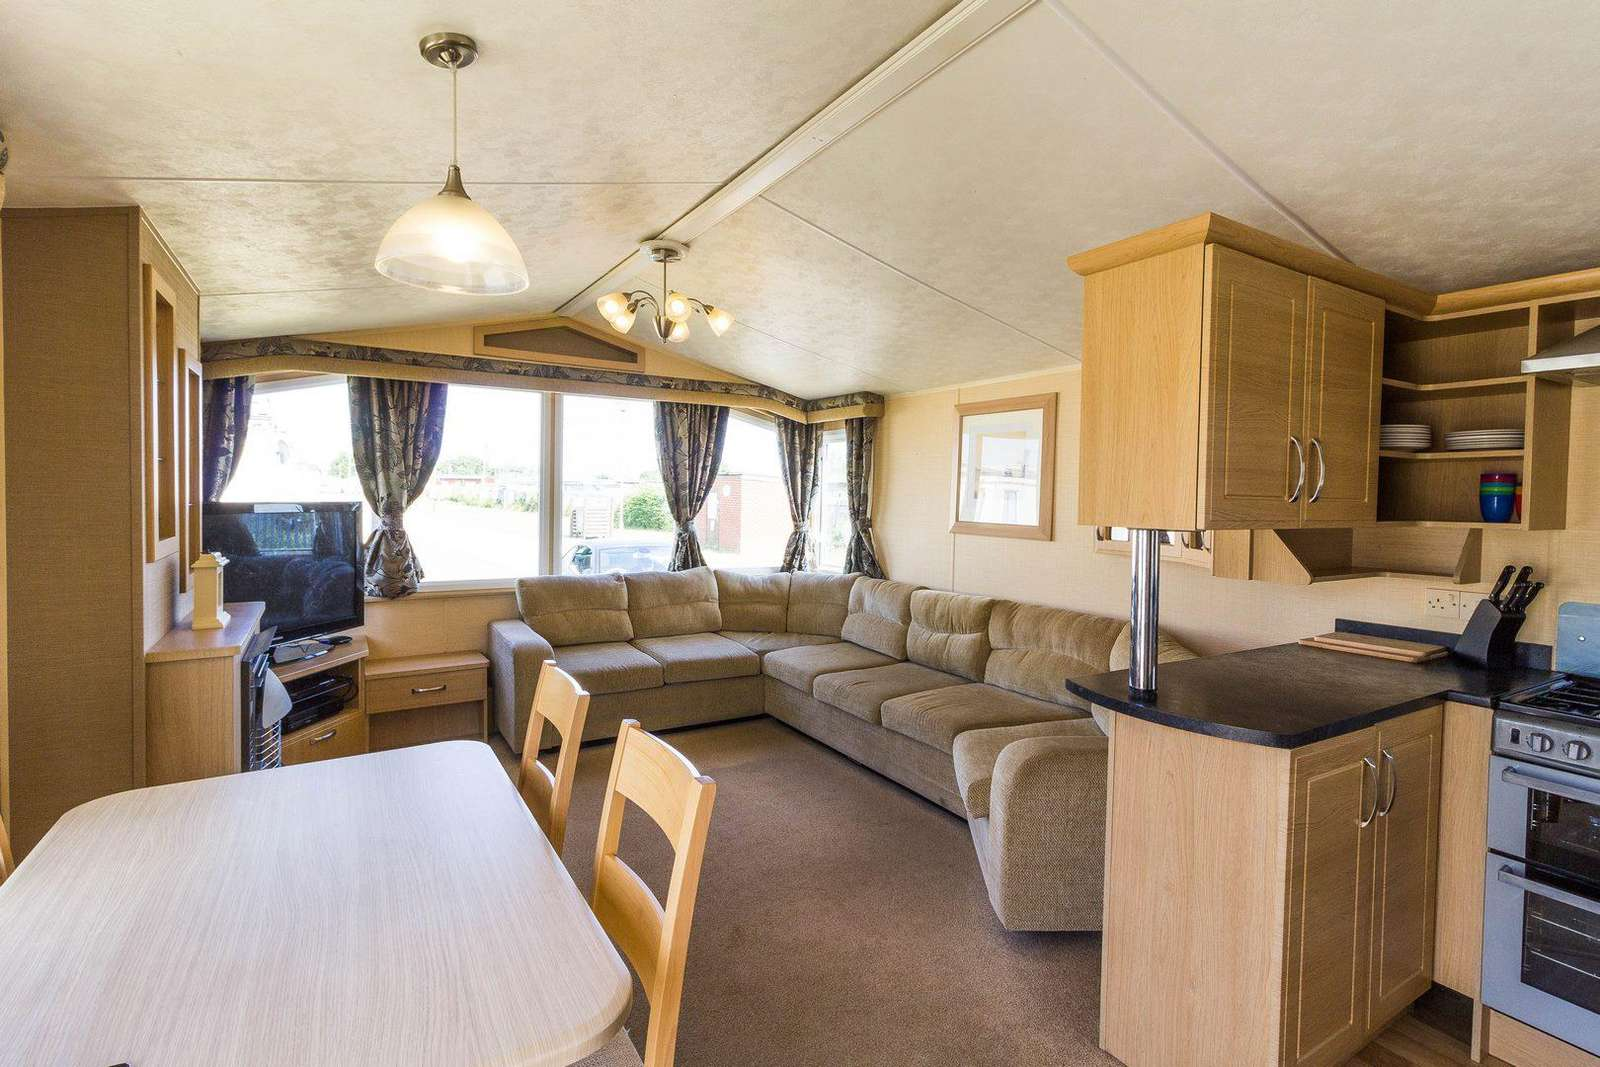 Perfect place to dine with your family or friends in this self-catering accommodation!